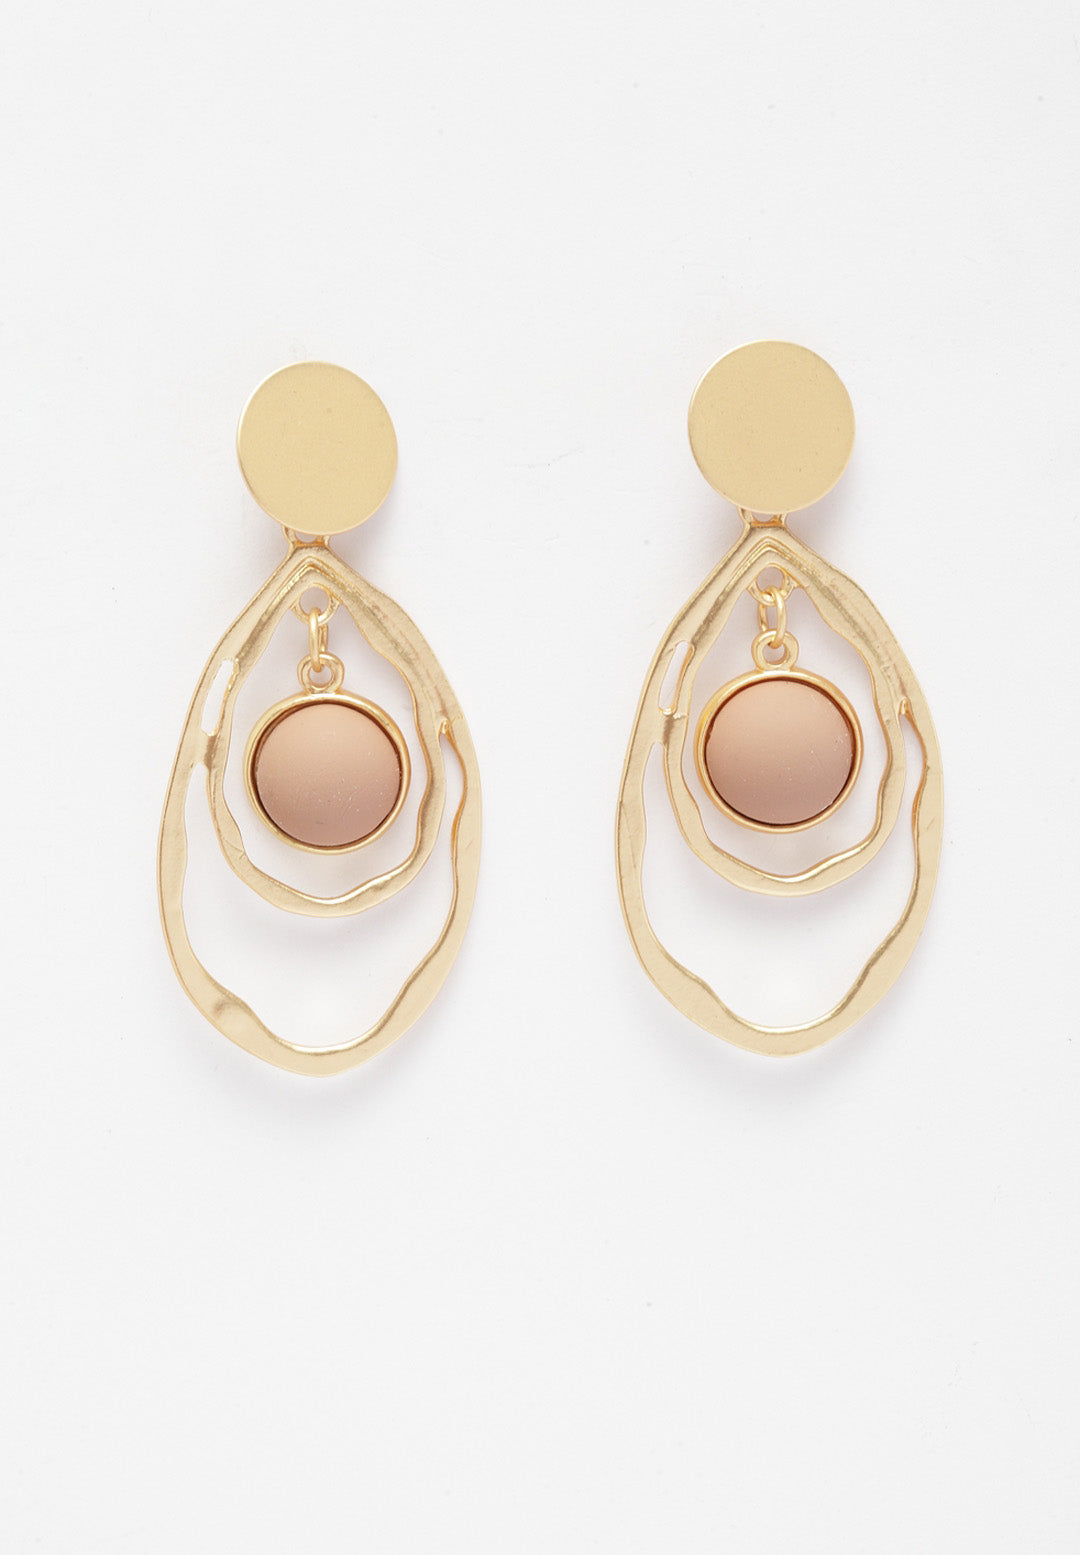 Avant-Garde Paris Sleek Gold-Plated Earrings